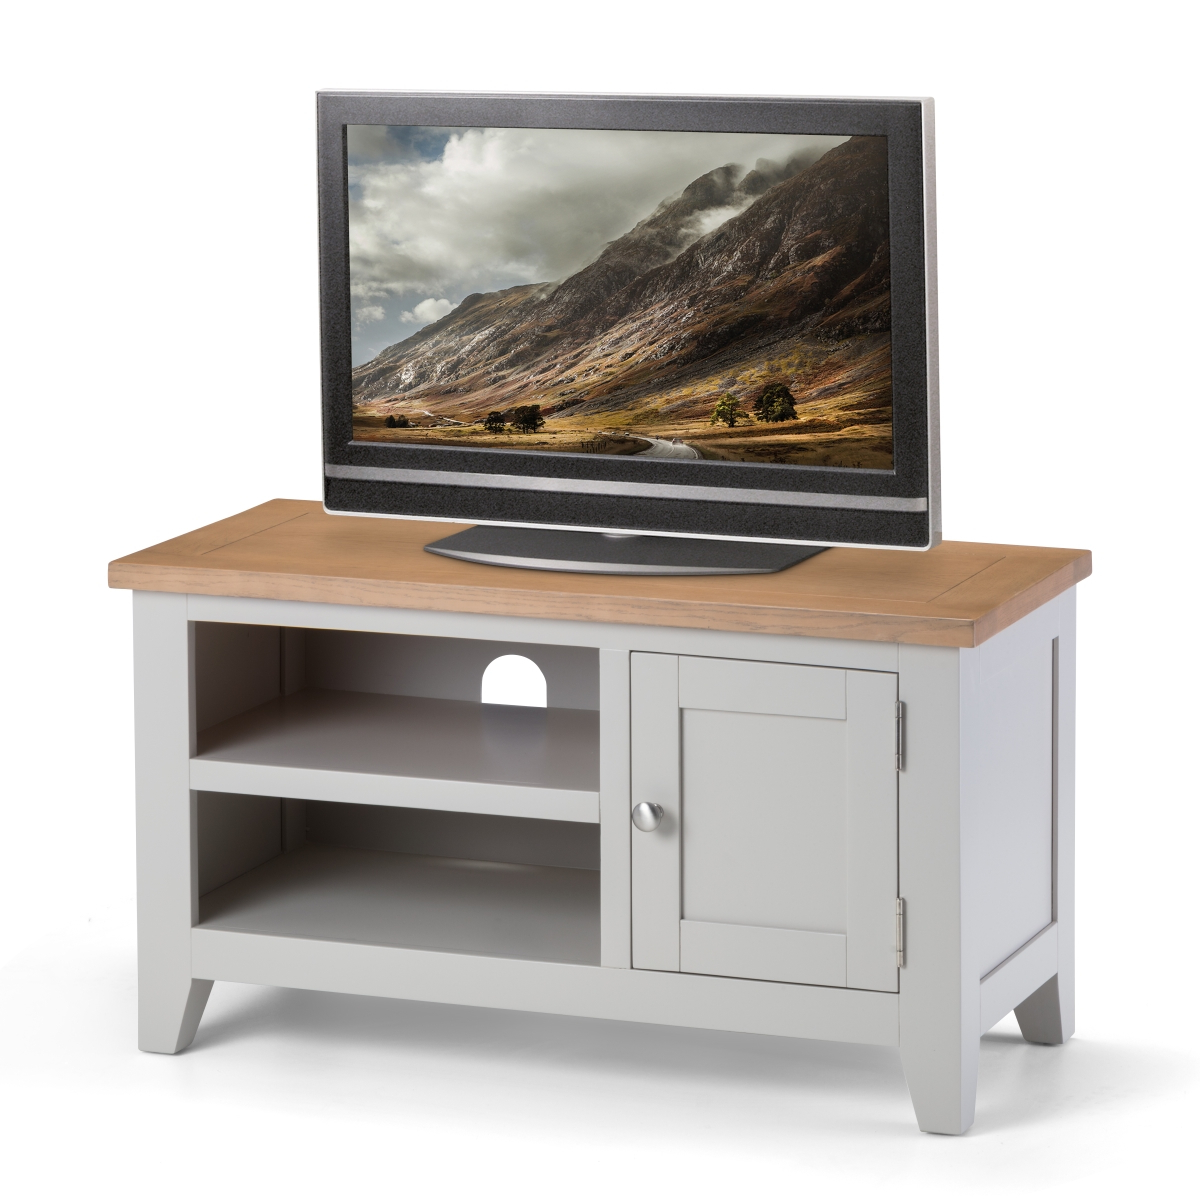 Oak Tv Stands Intended For Most Popular Tv Stand – Richmond Tv Unit Ric207 Grey And Oak Tv Unit (View 15 of 20)